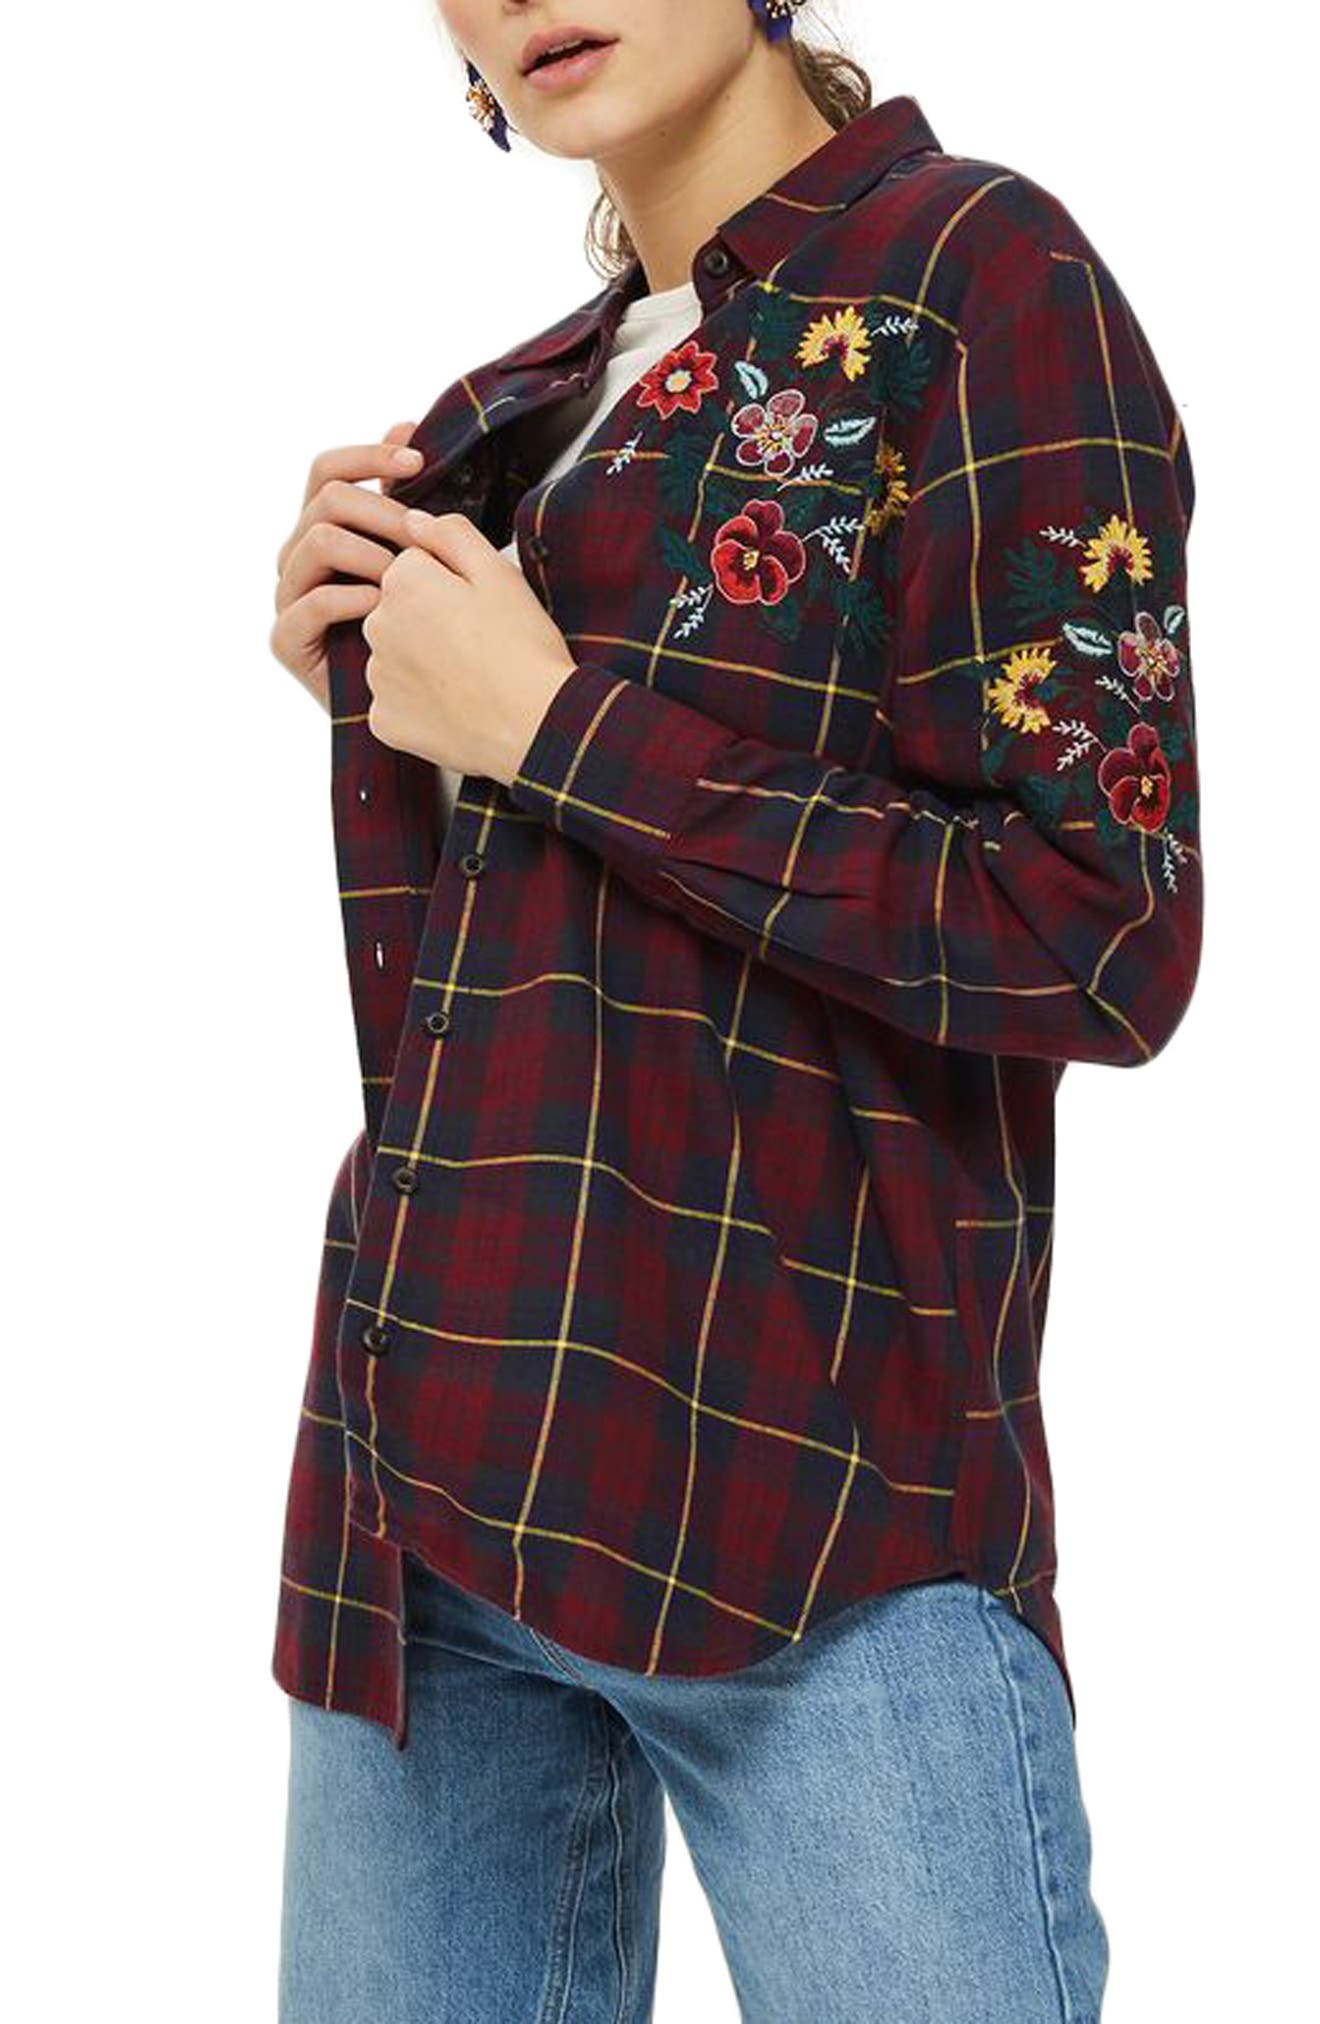 Floral Embroidered Check Shirt,                             Alternate thumbnail 3, color,                             601